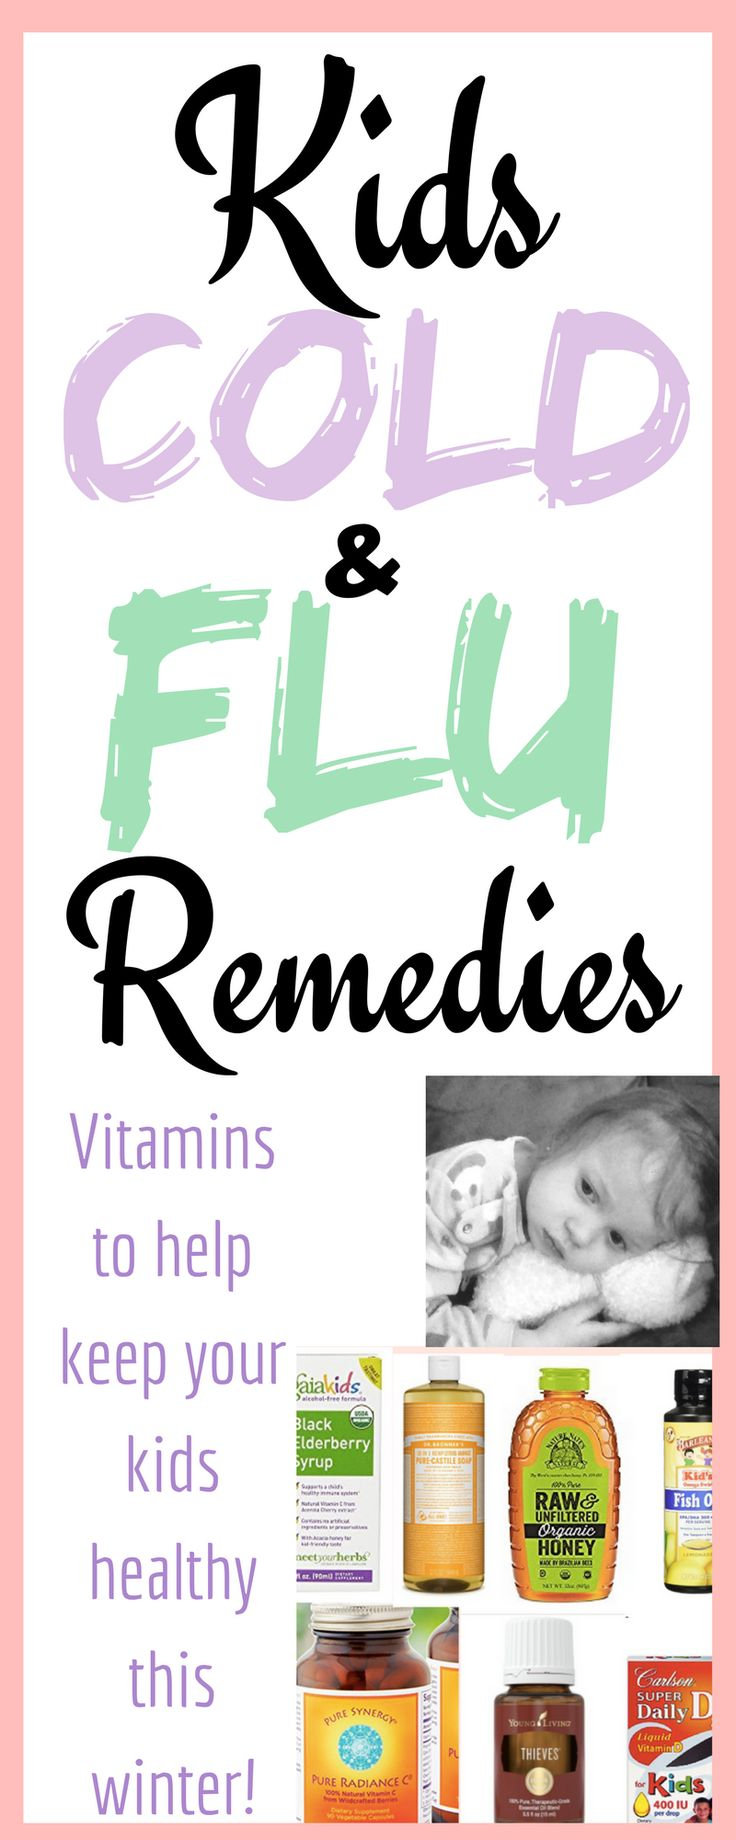 Kid's cold & flu remedies! Immune system booster vitamins and natural remedies for kids! Your must-have supplements to keep your kids healthy this school year and protect them from cold and flu season!